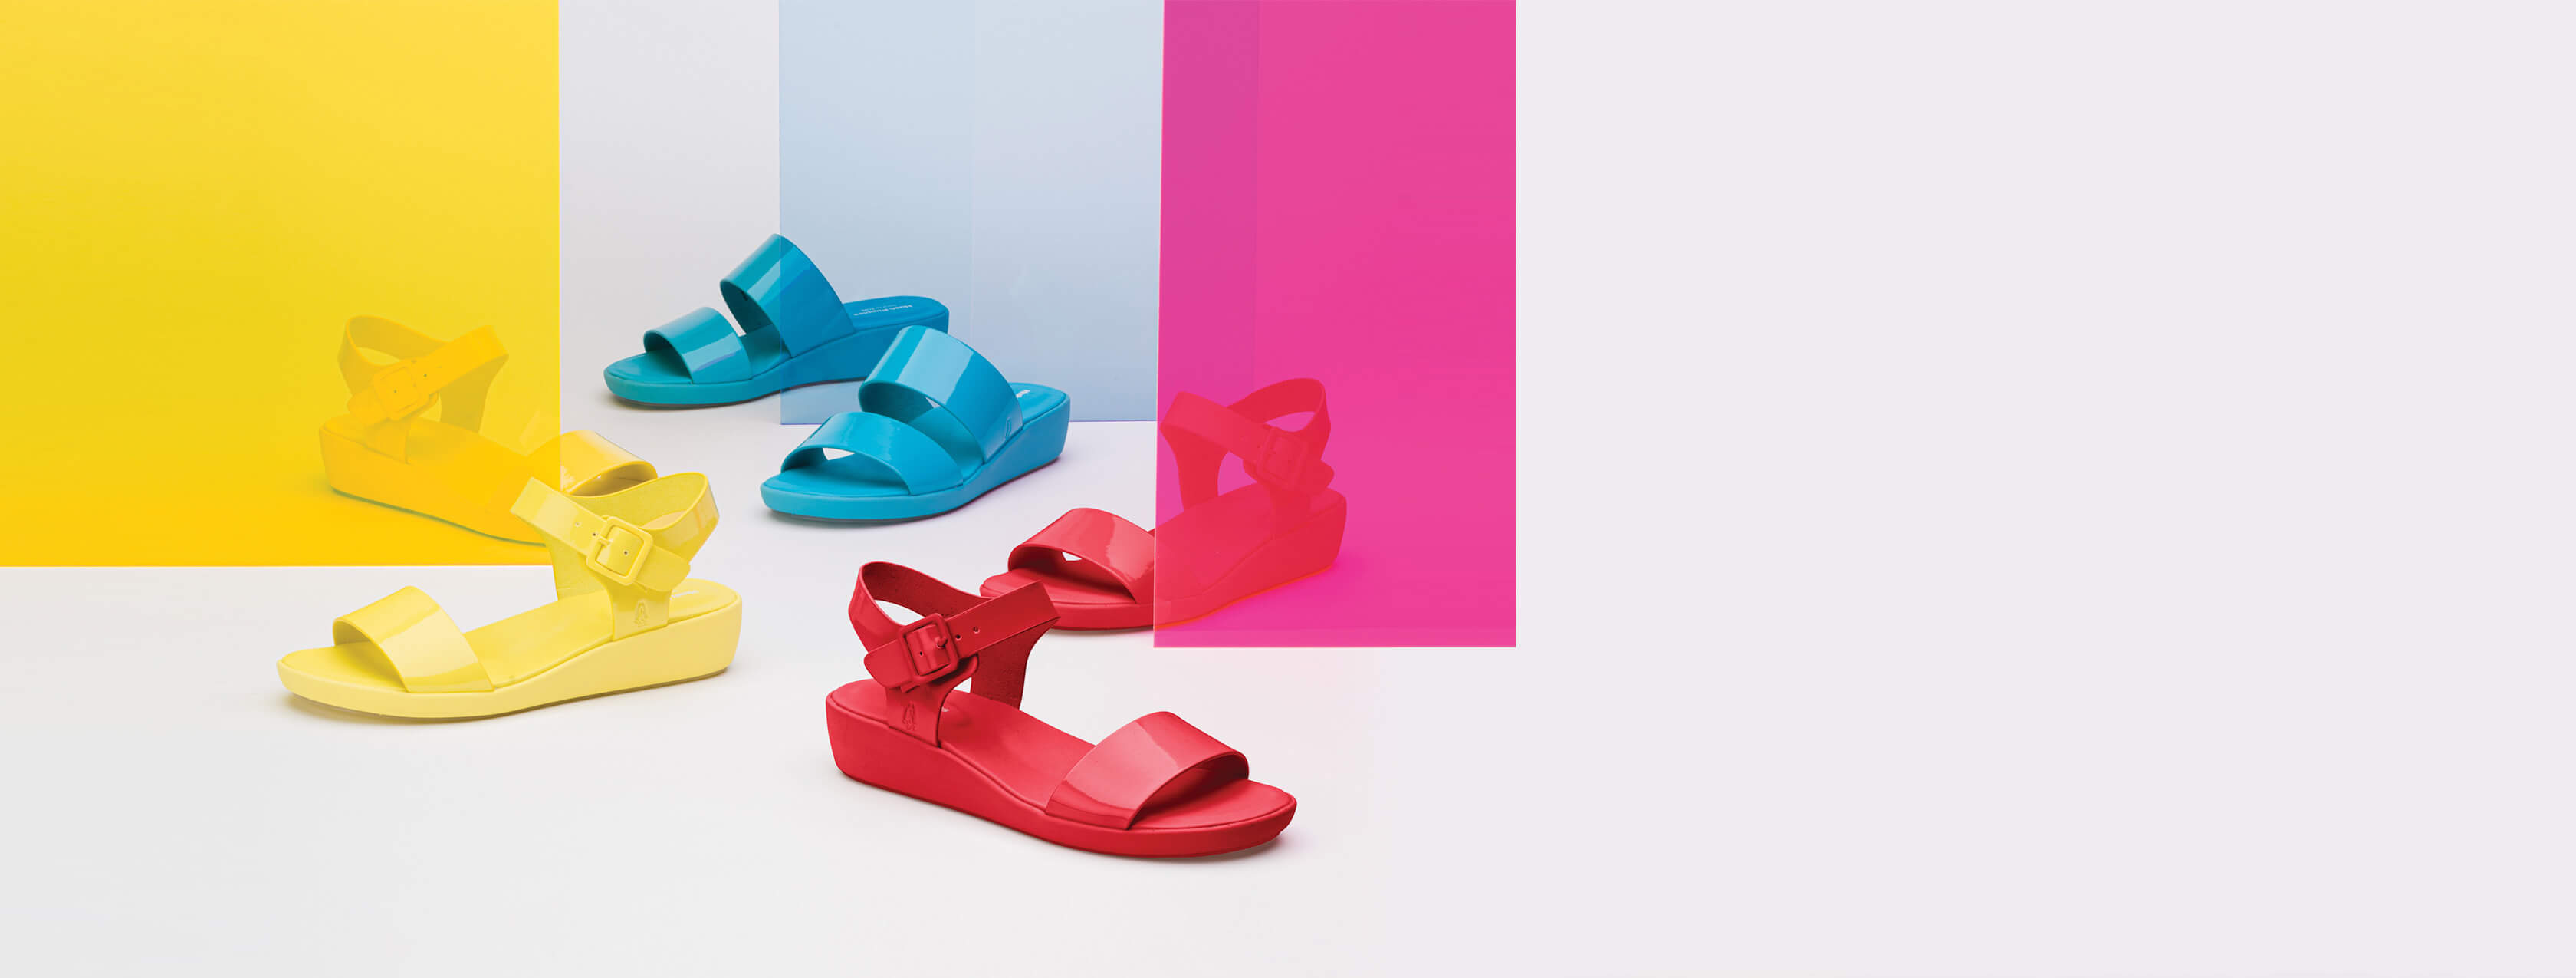 Jell sandals in primary colors.